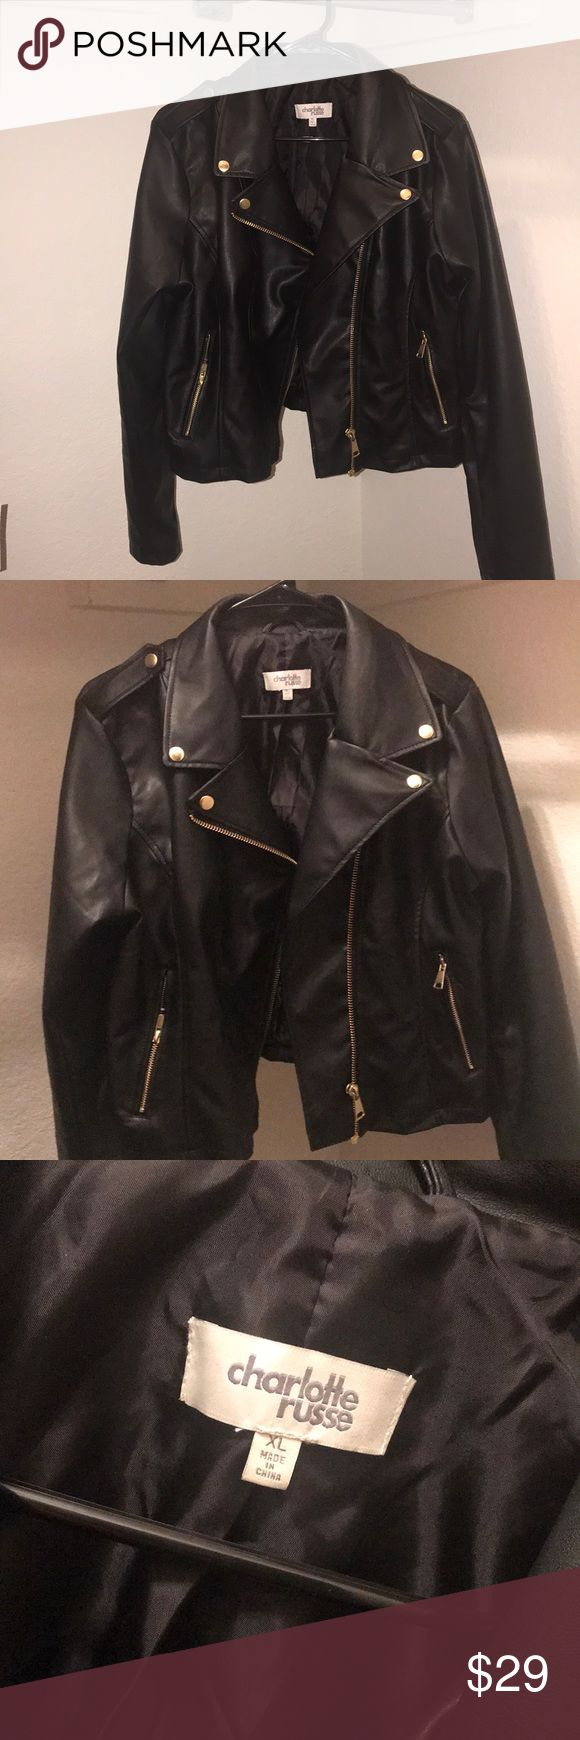 Black Fashion Leather Jacket Charlotte Rousse Black Fashion Leather Jacket.  Size XL.  Worn once, excellent condition. Charlotte Russe Jackets & Coats